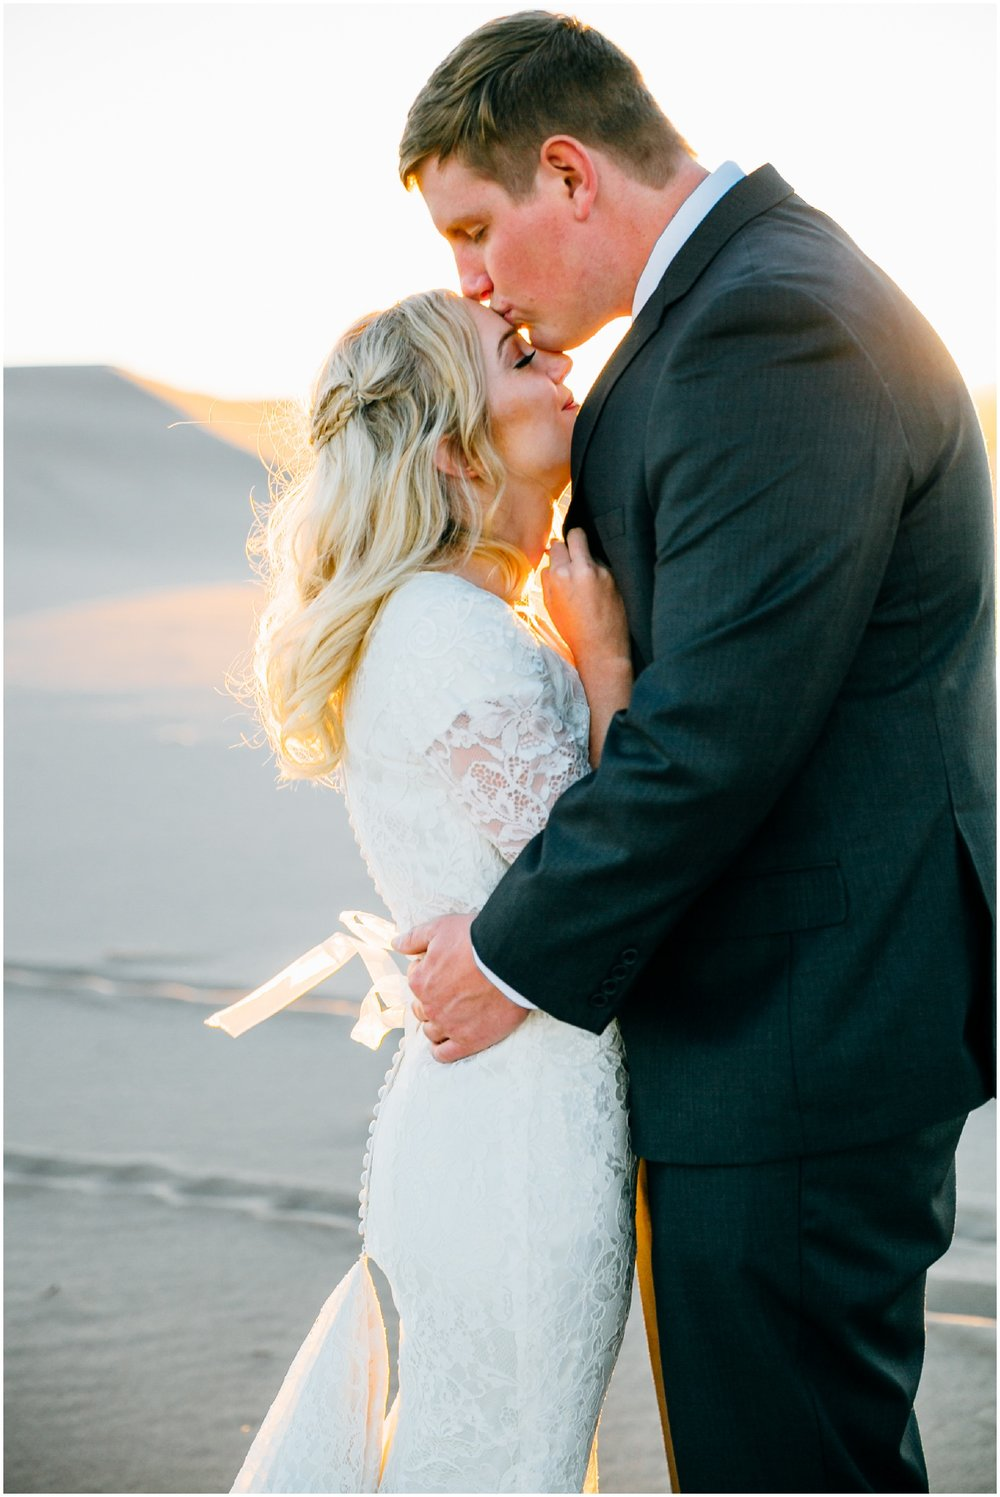 saint-anthony-sand-dunes-bridals-idaho-engagements-colorado-wyoming-wedding-photographer_0749.jpg